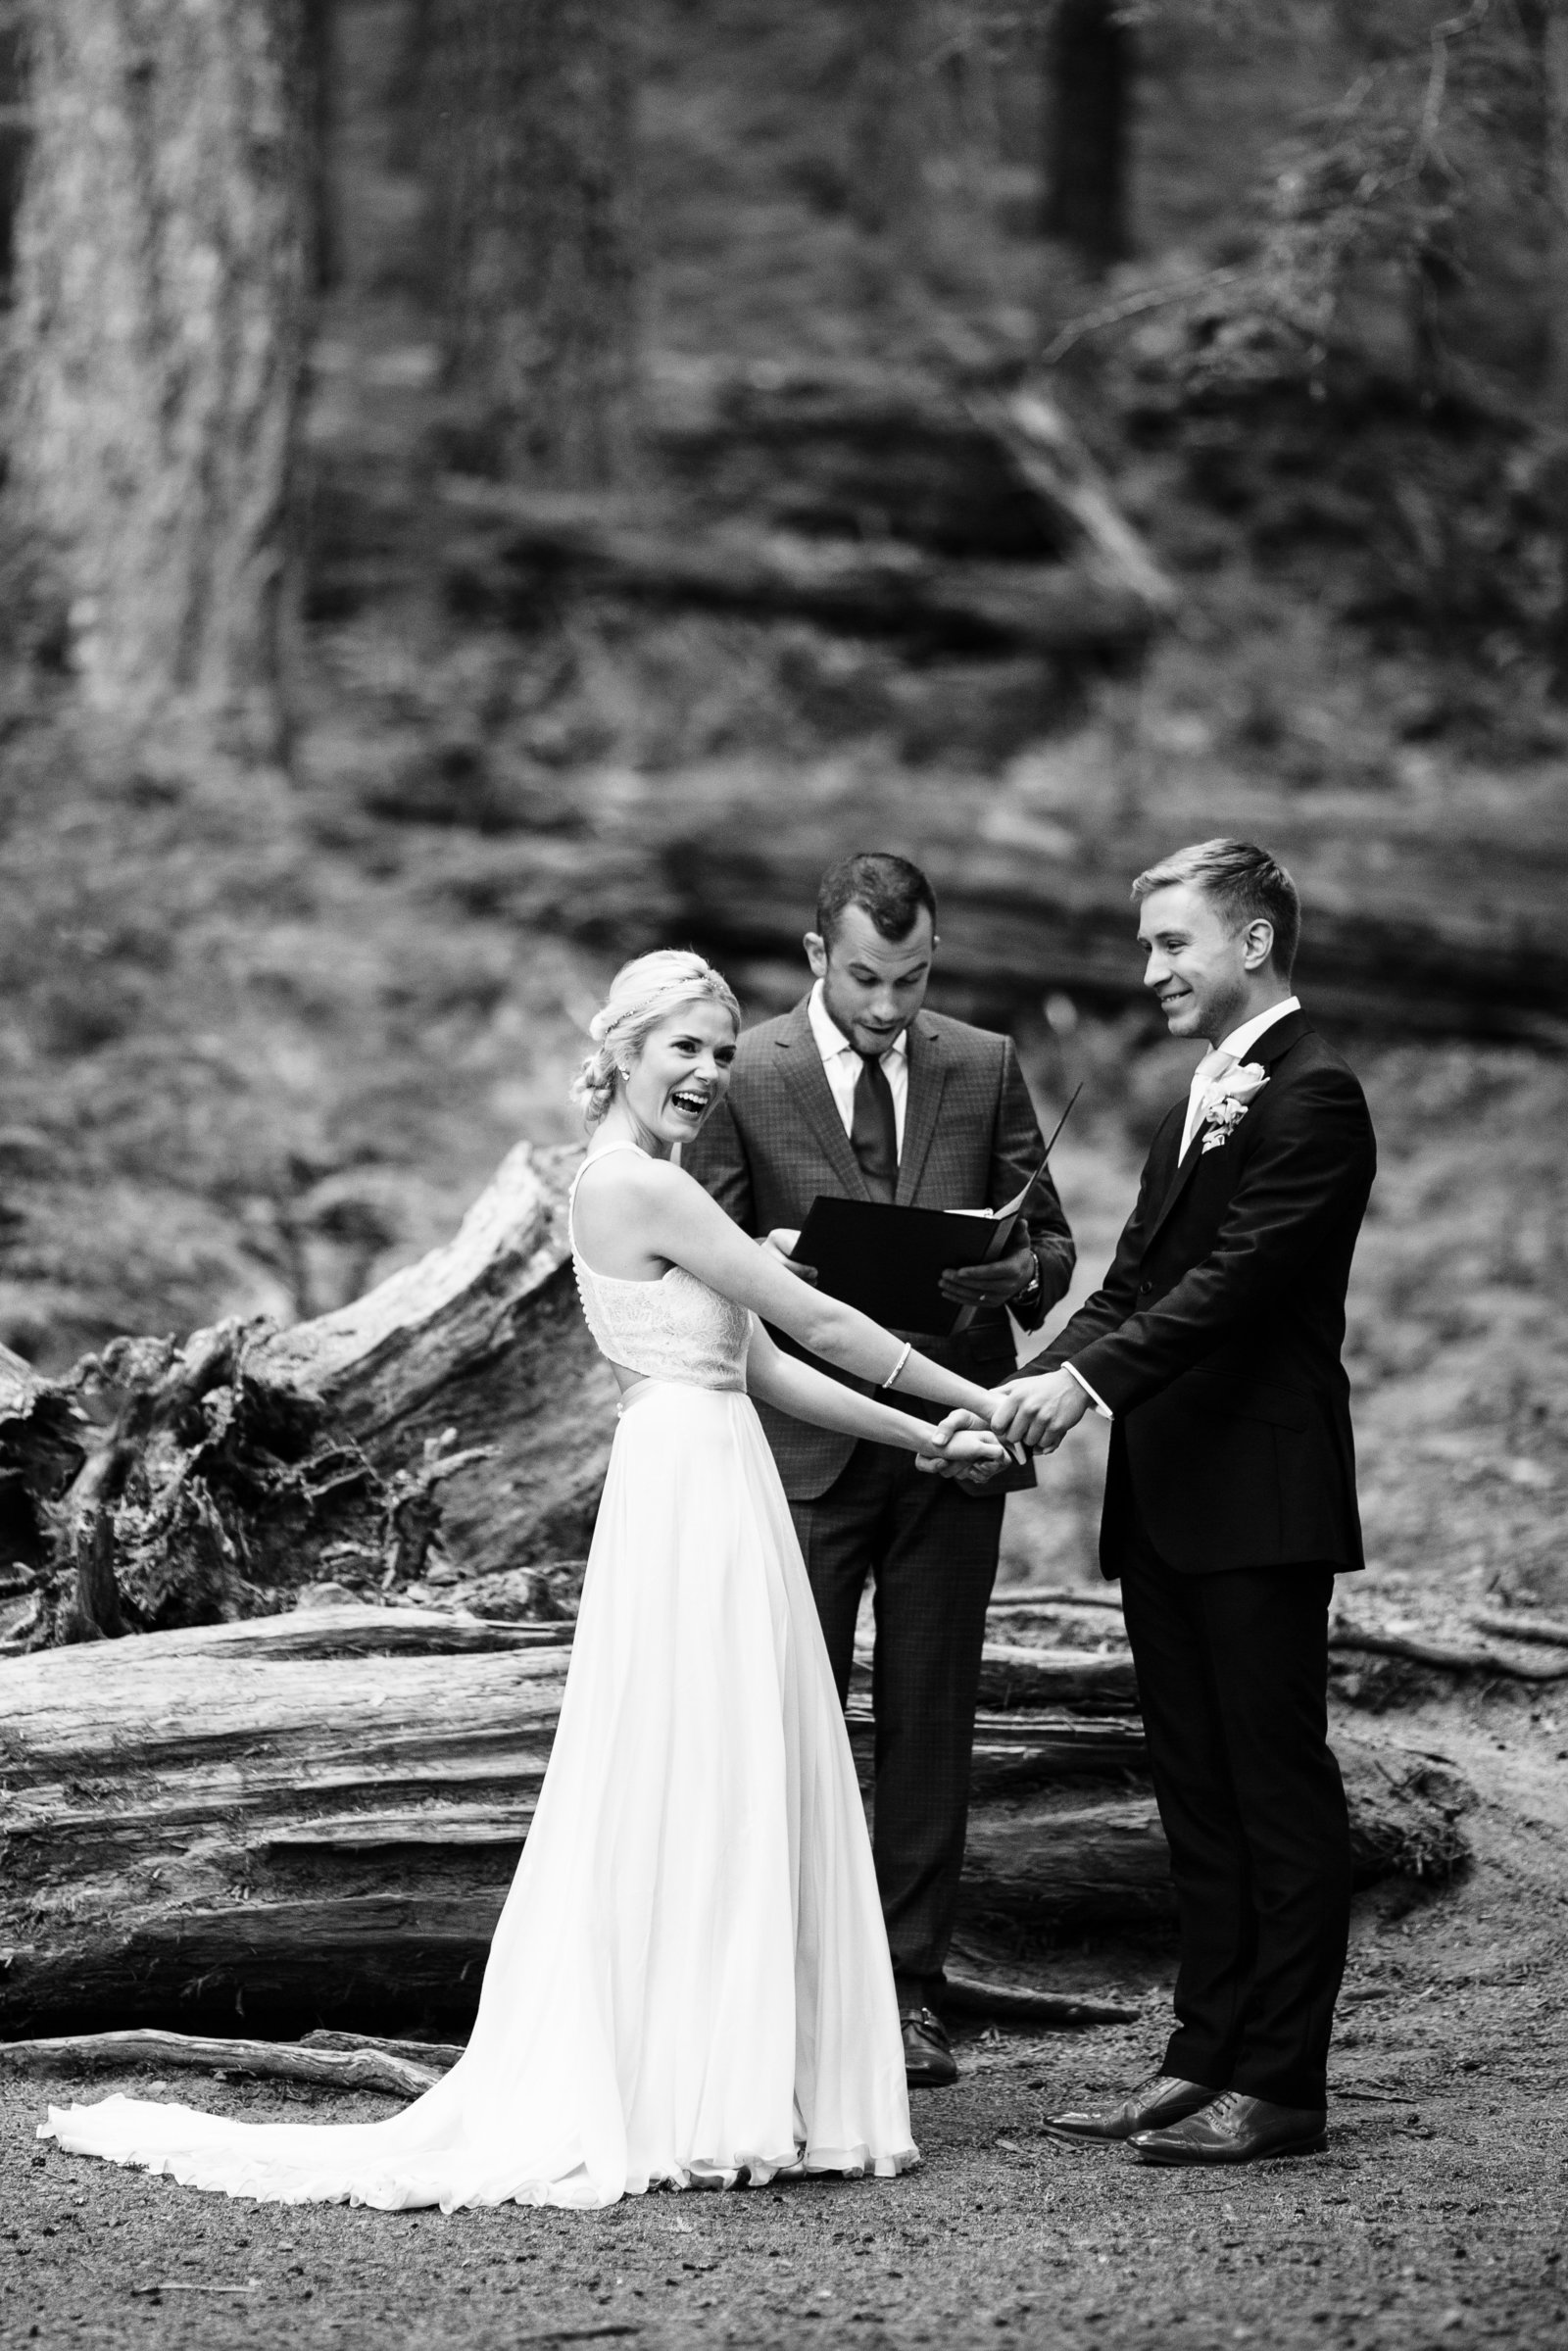 mount-rainier-national-park-elopement-cameron-zegers-photographer-seattle-69